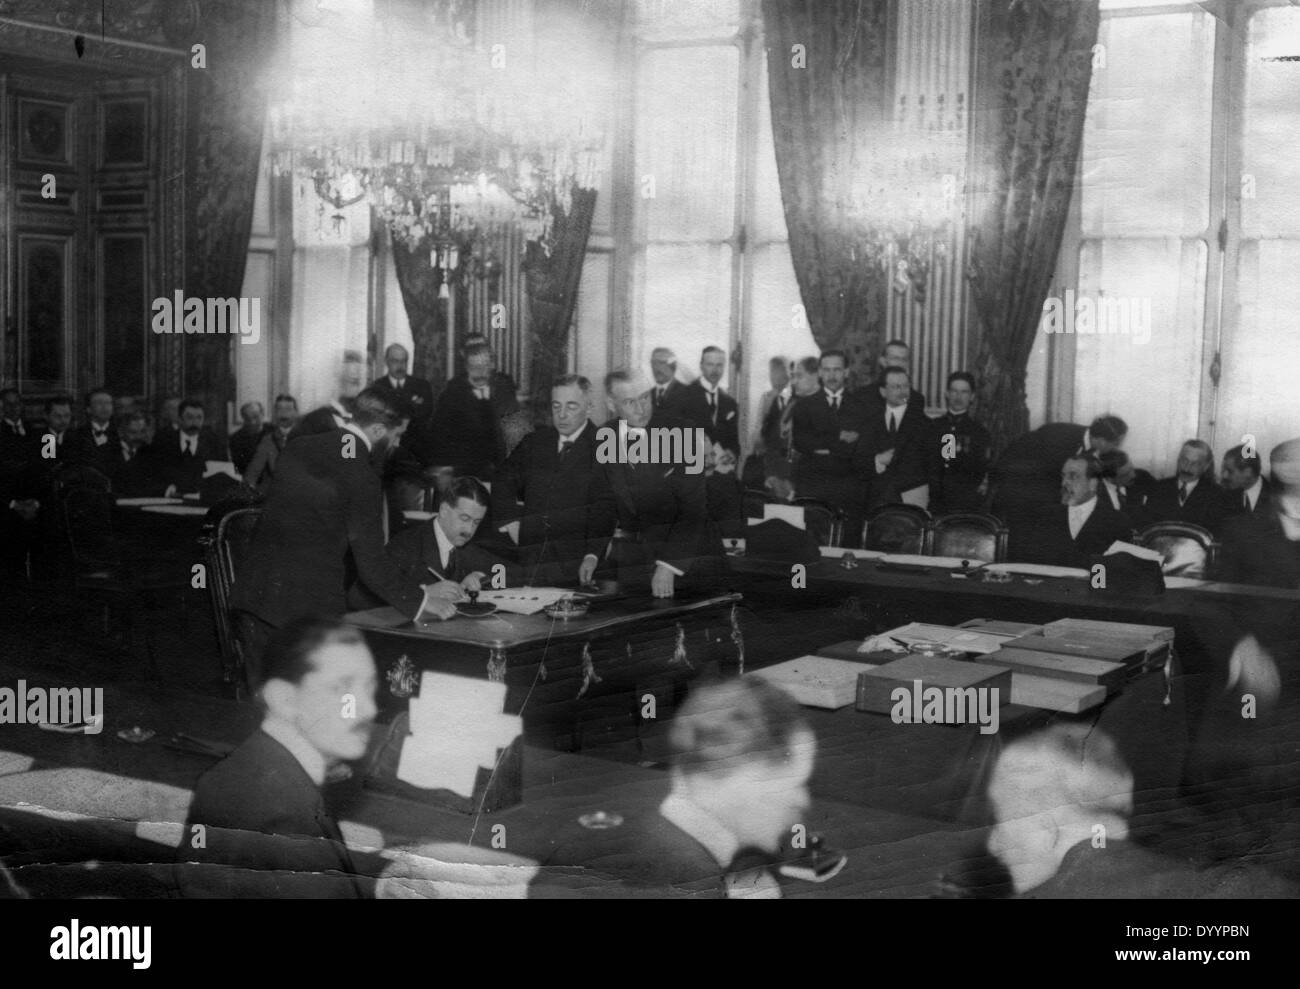 the background of the signing of the treaty of versailles in germany after wwi The causes of wwii are rooted in the aftermath of wwi and the effects of the treaty of versailles, which ended the first world war one of the many provisions of the treaty of versailles was for germany to accept responsibility for causing the great war.